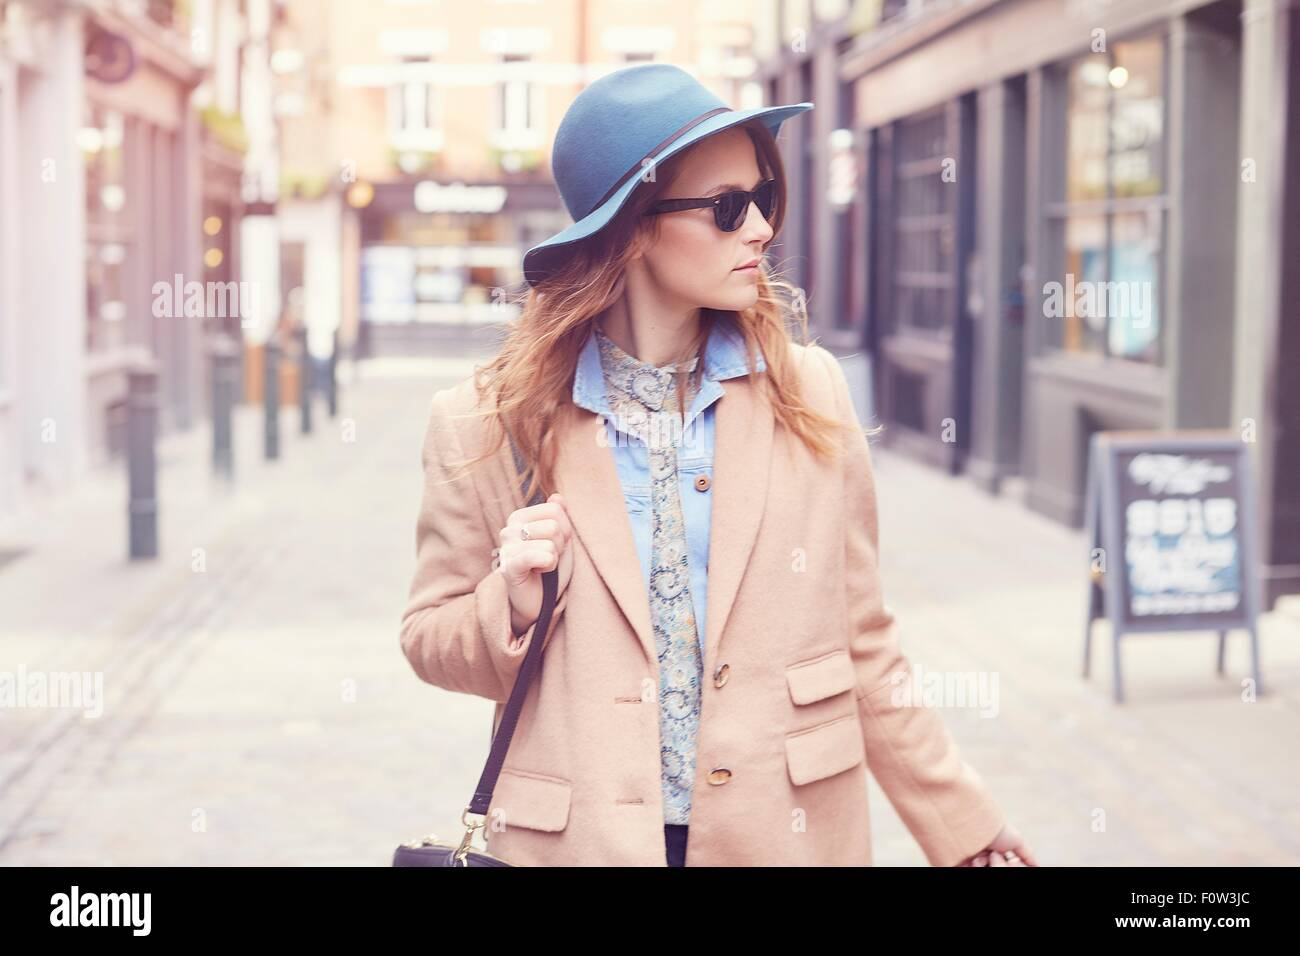 Stylish young female shopper strolling on street, London, UK - Stock Image